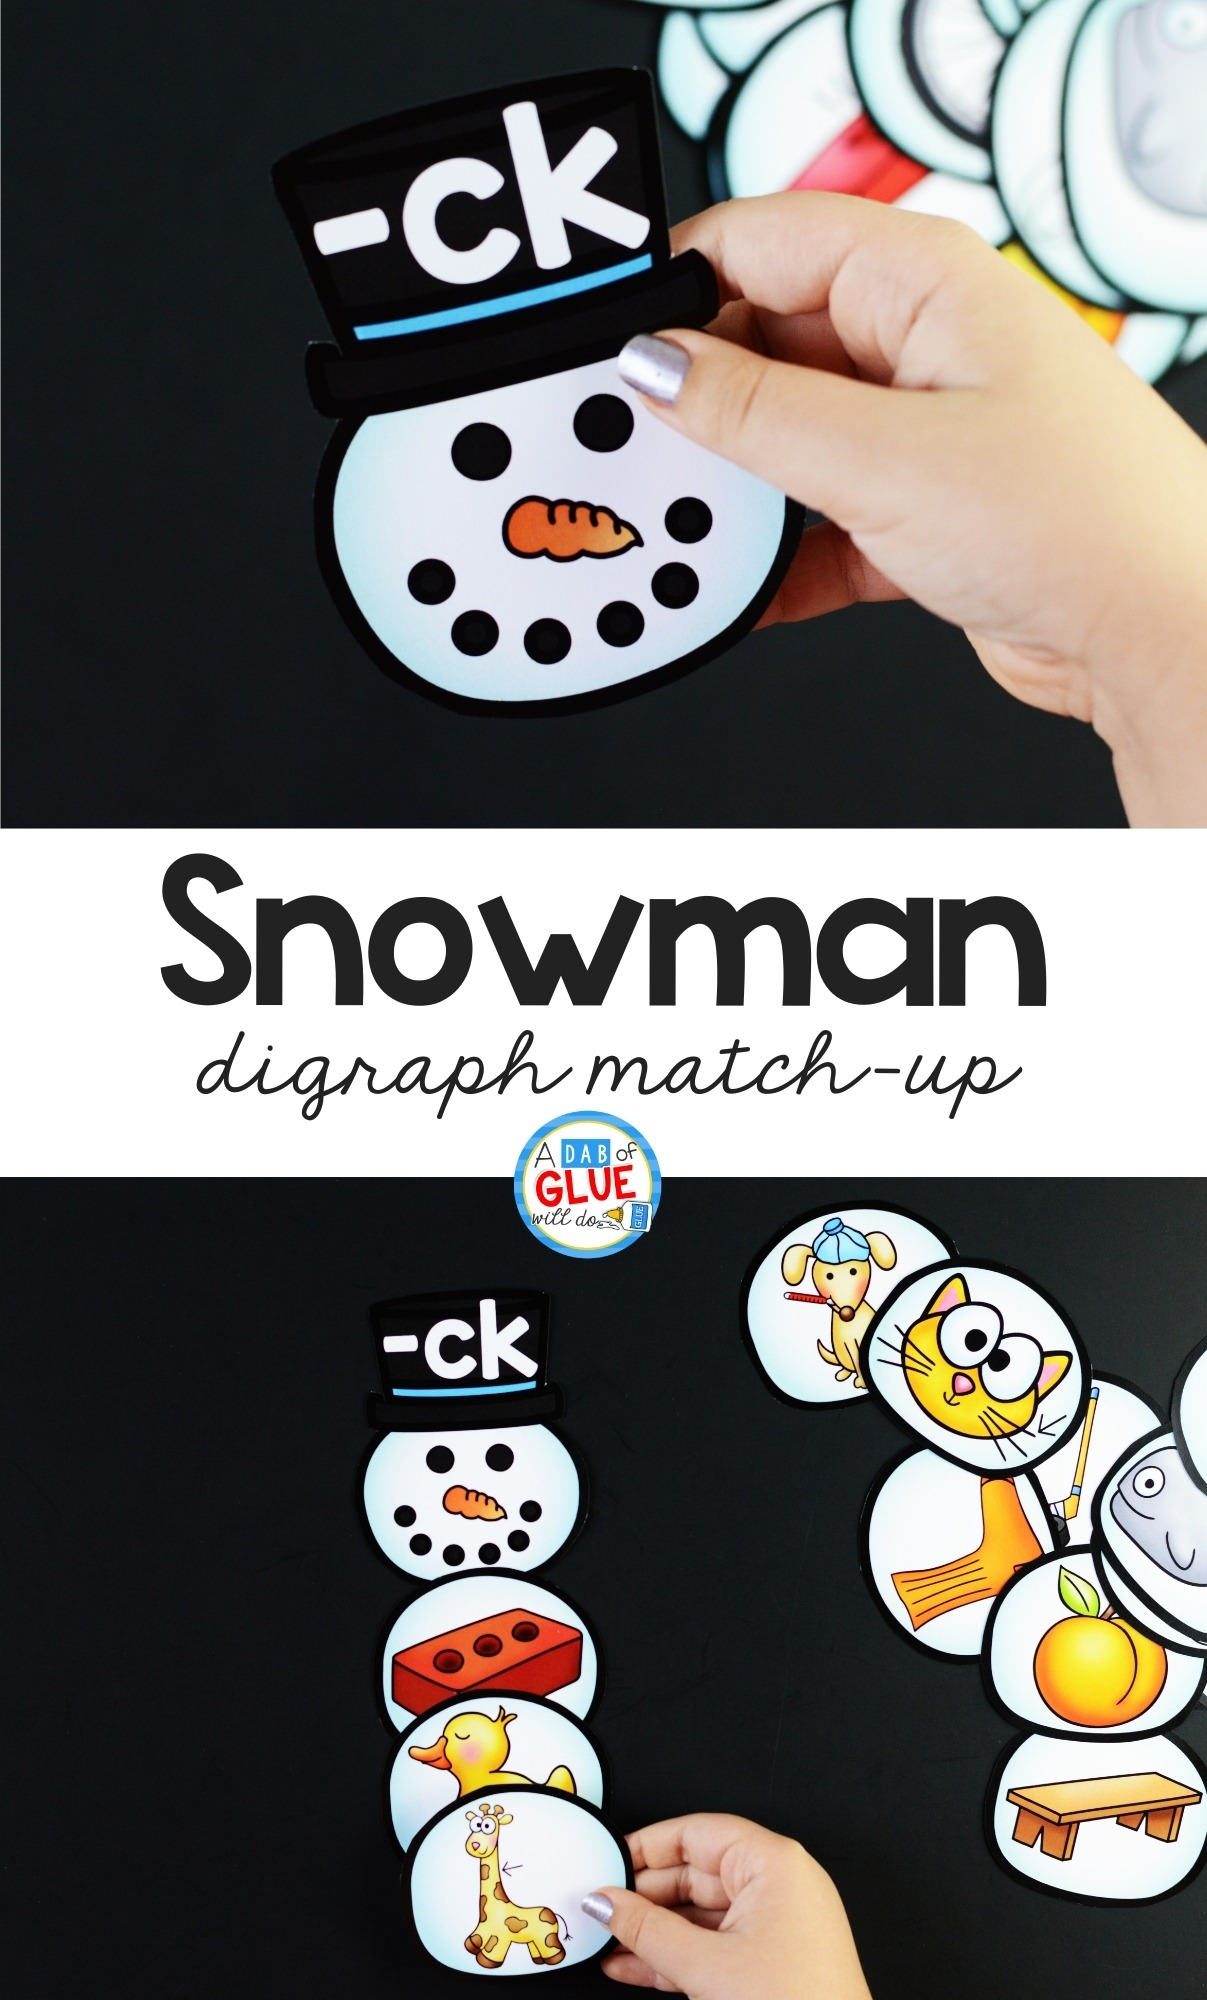 Snowman Digraph Match-Up Pinterest image.